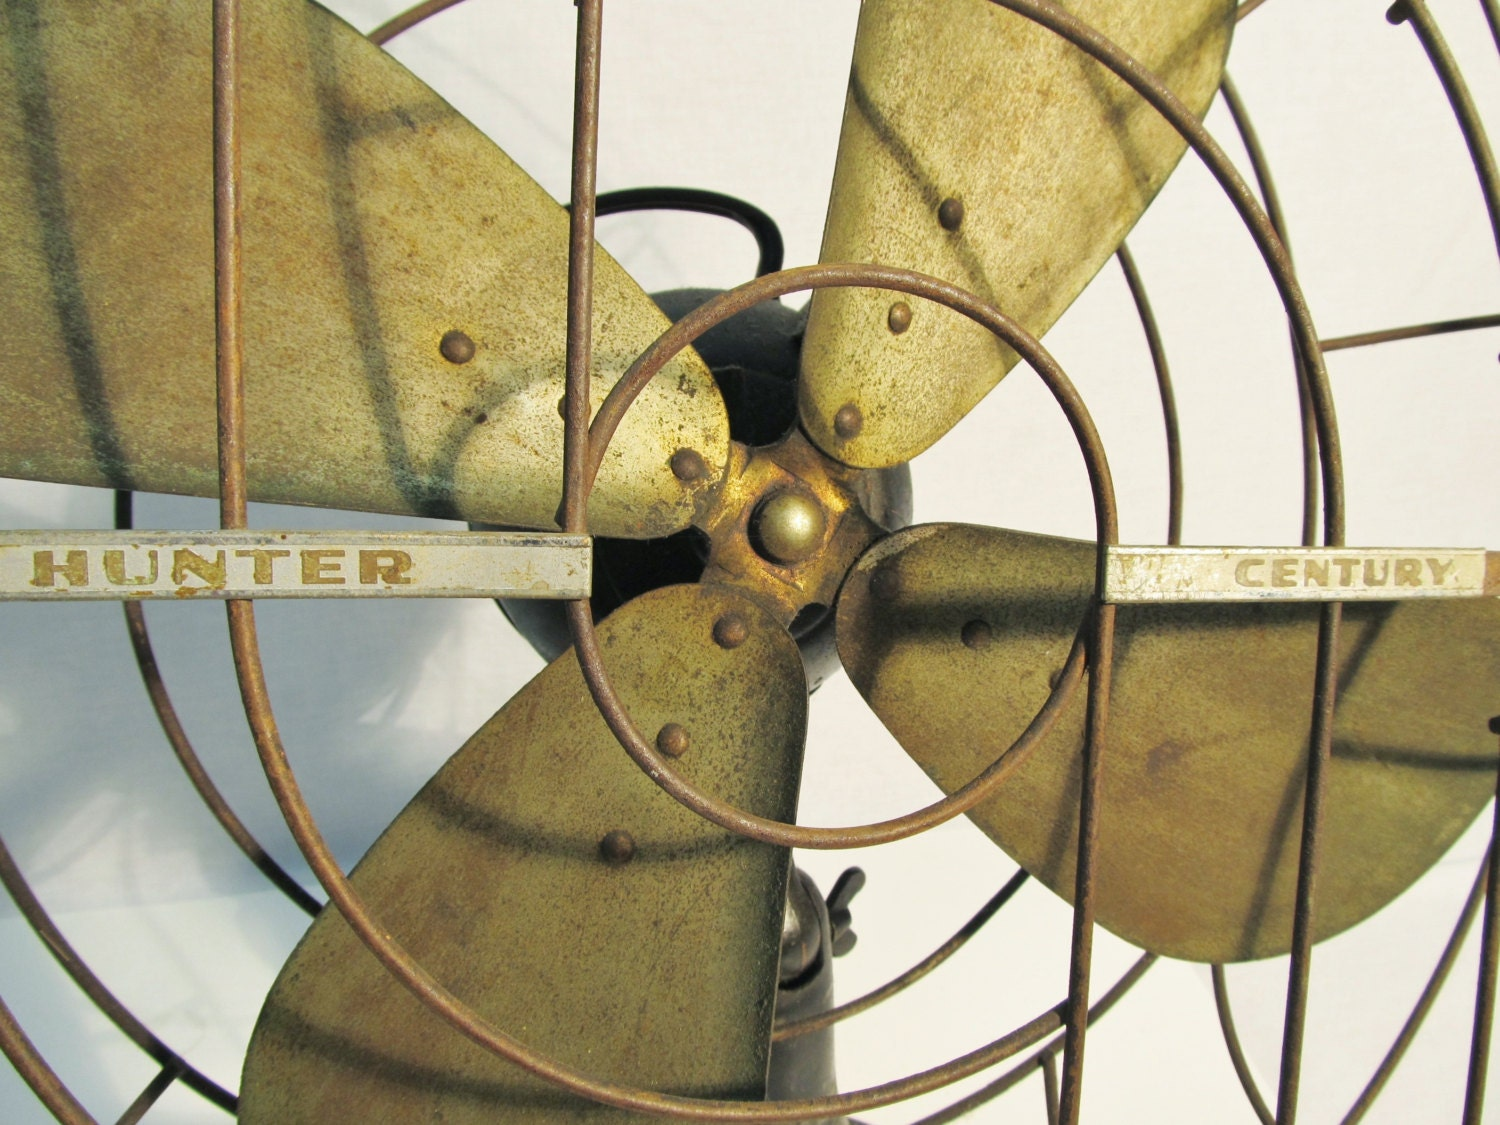 1930 S Hunter Century Electric Fan 3 Speed Oscillating